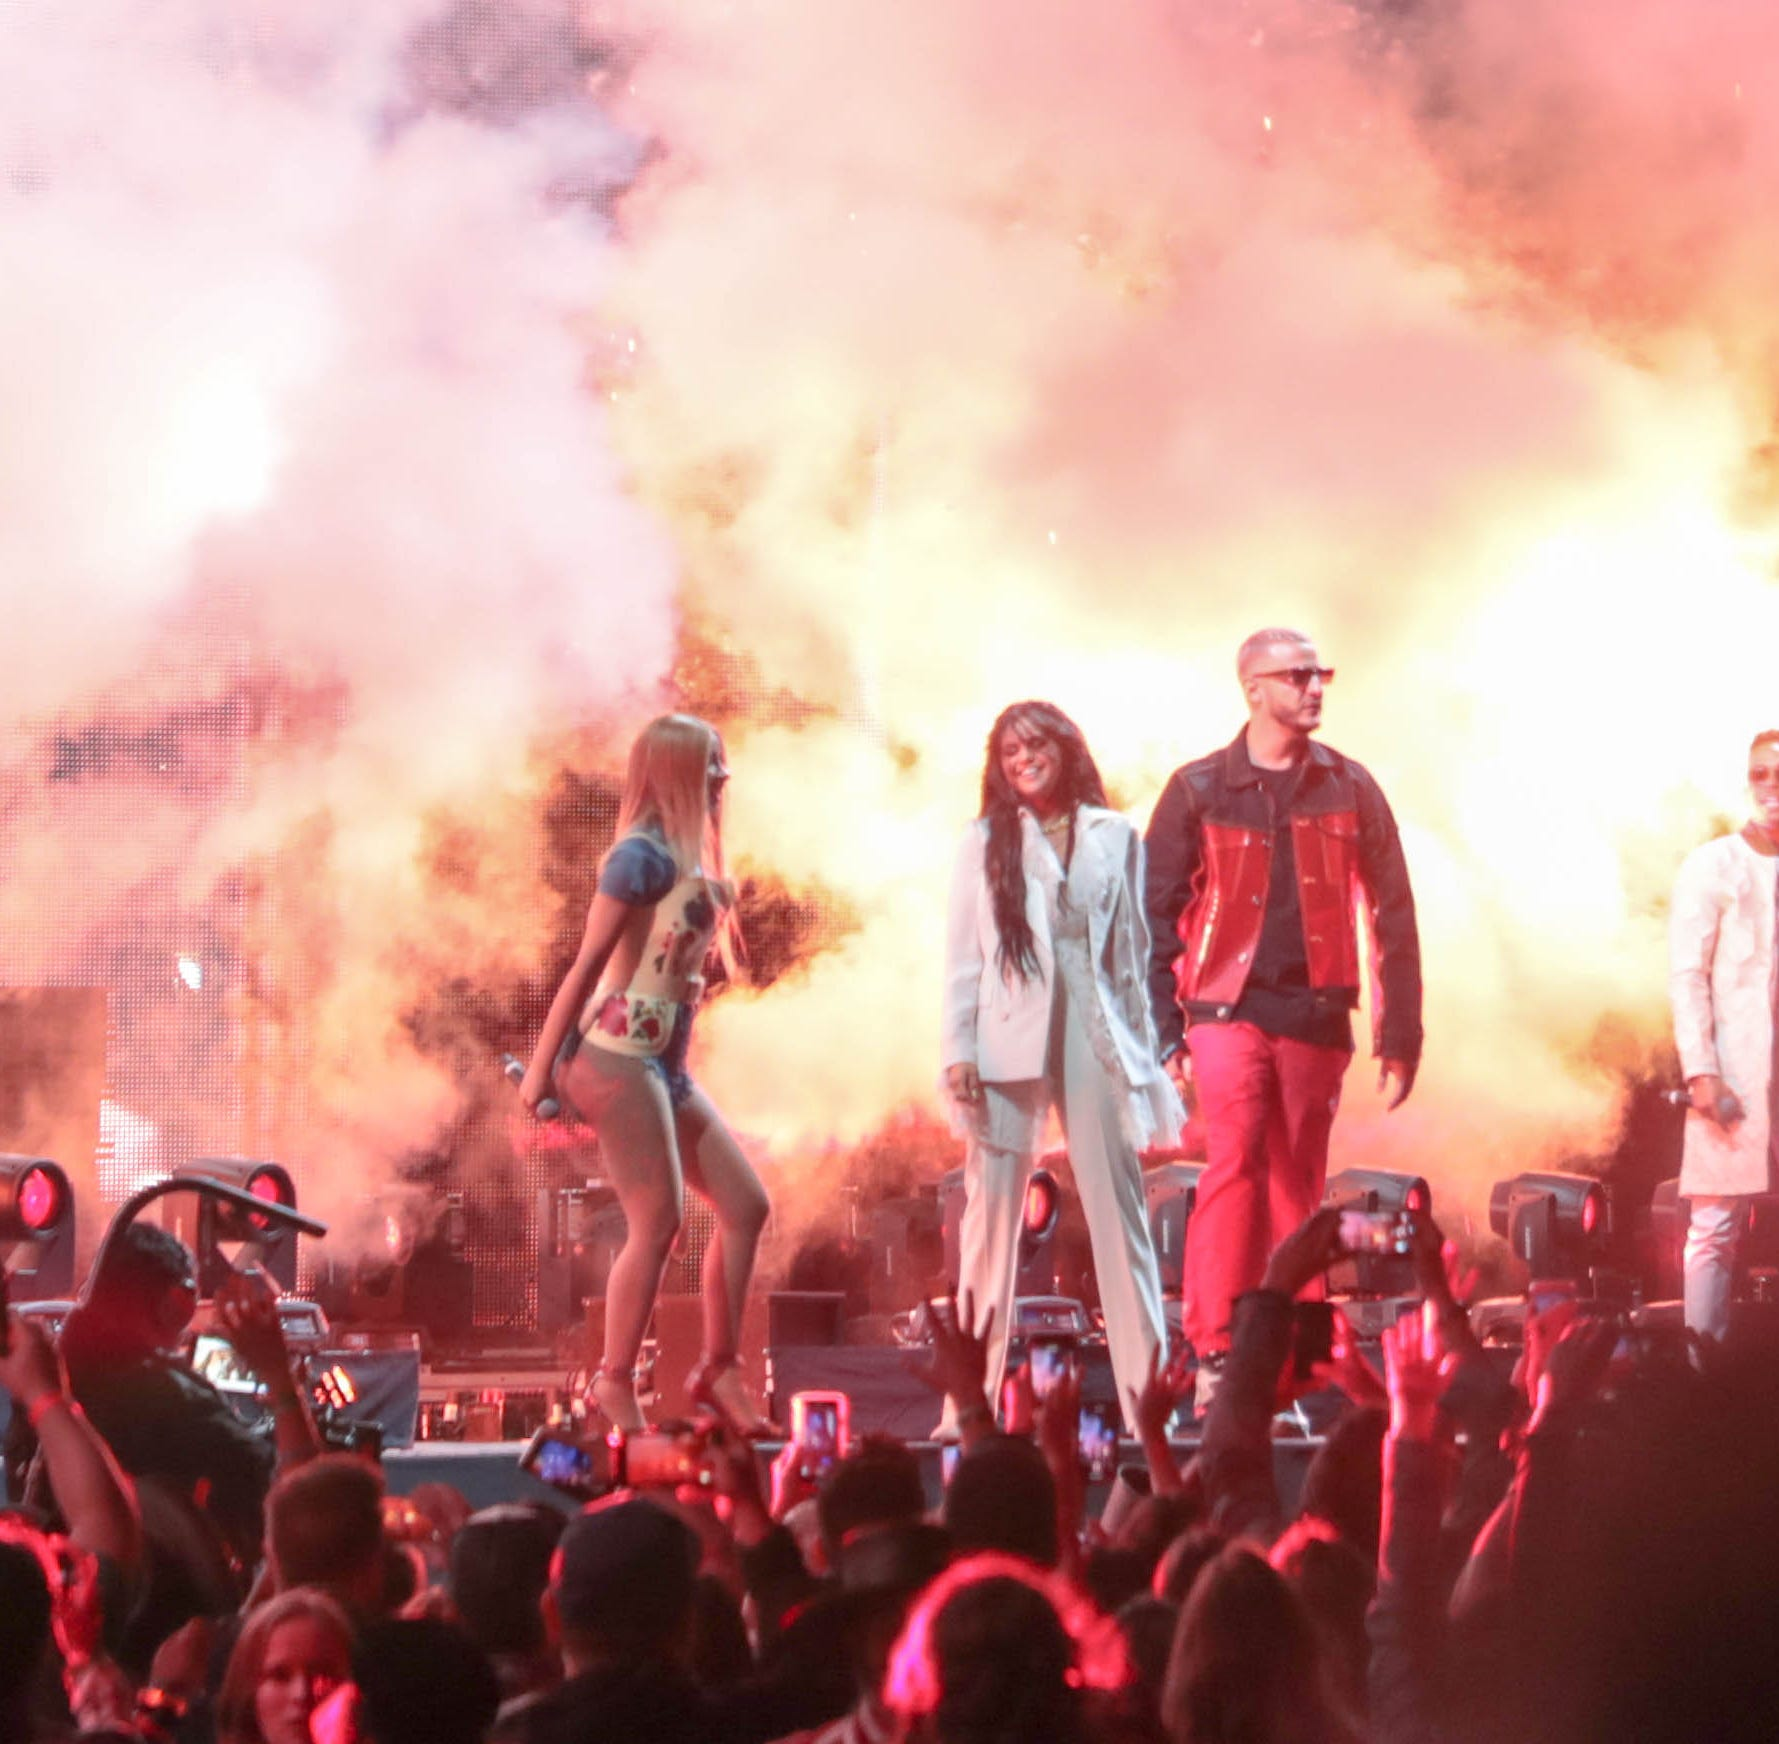 Coachella 2019: DJ Snake brings out Cardi B, Selena Gomez and Ozuna to perform 'Taki Taki'